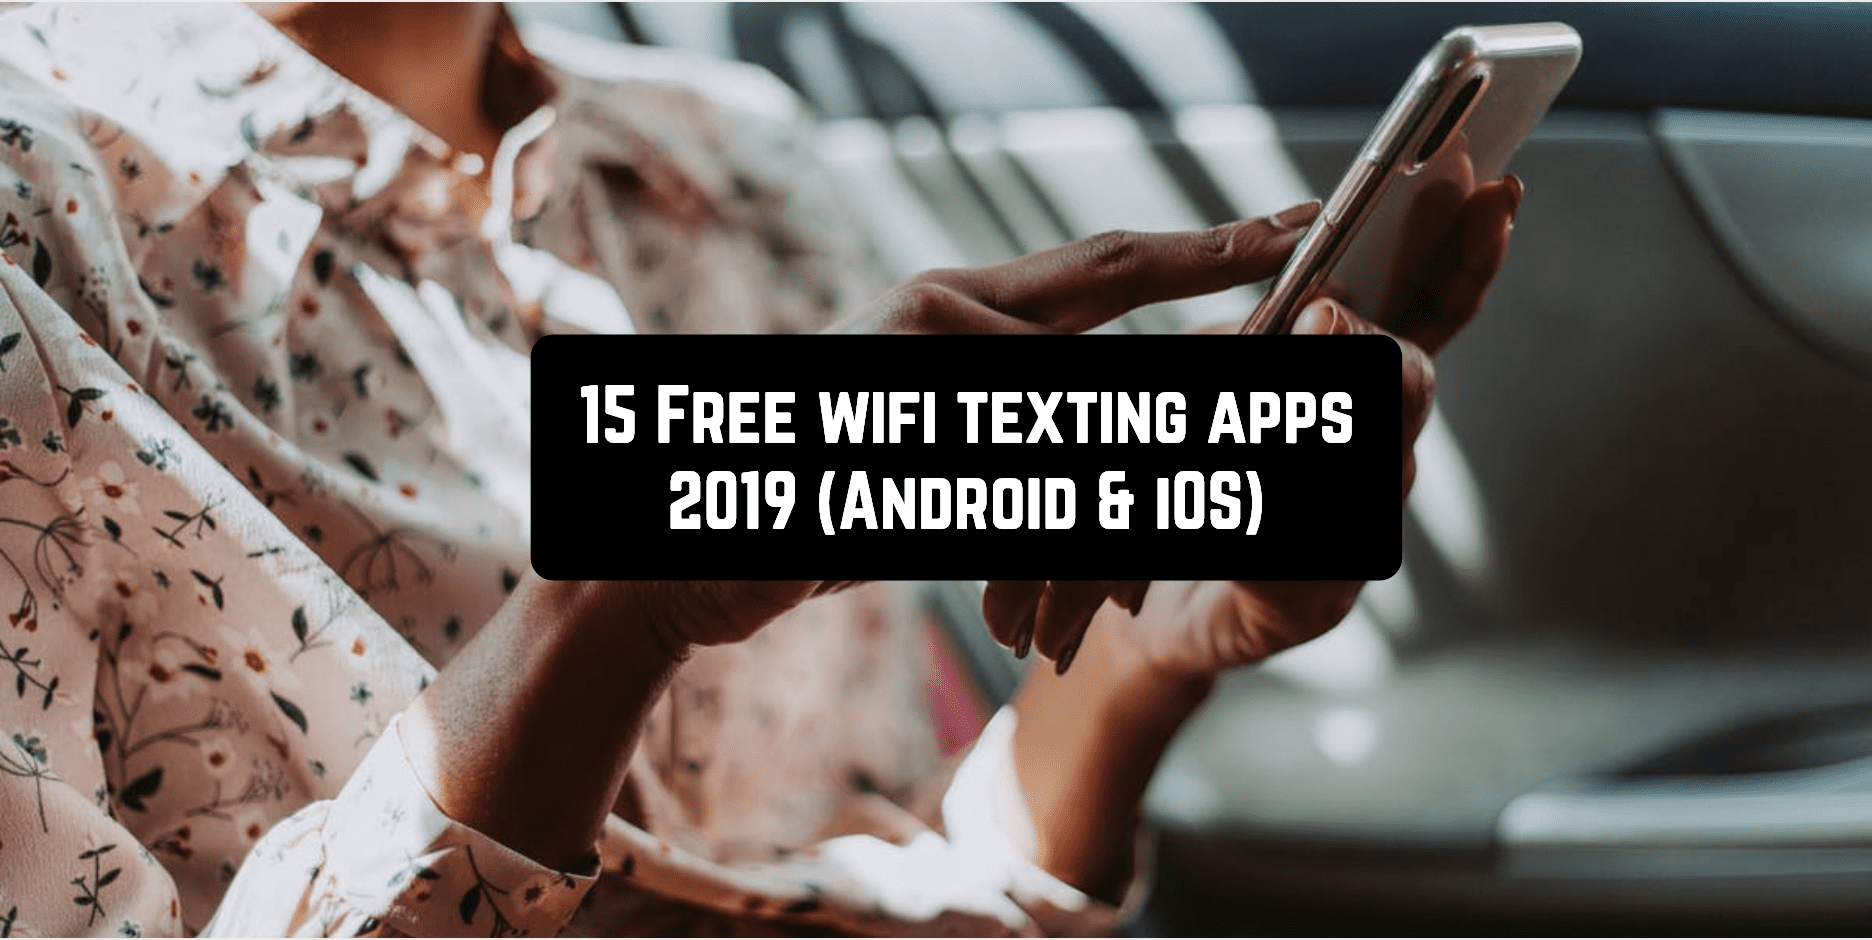 15 Free wifi texting apps 2019 (Android & iOS)